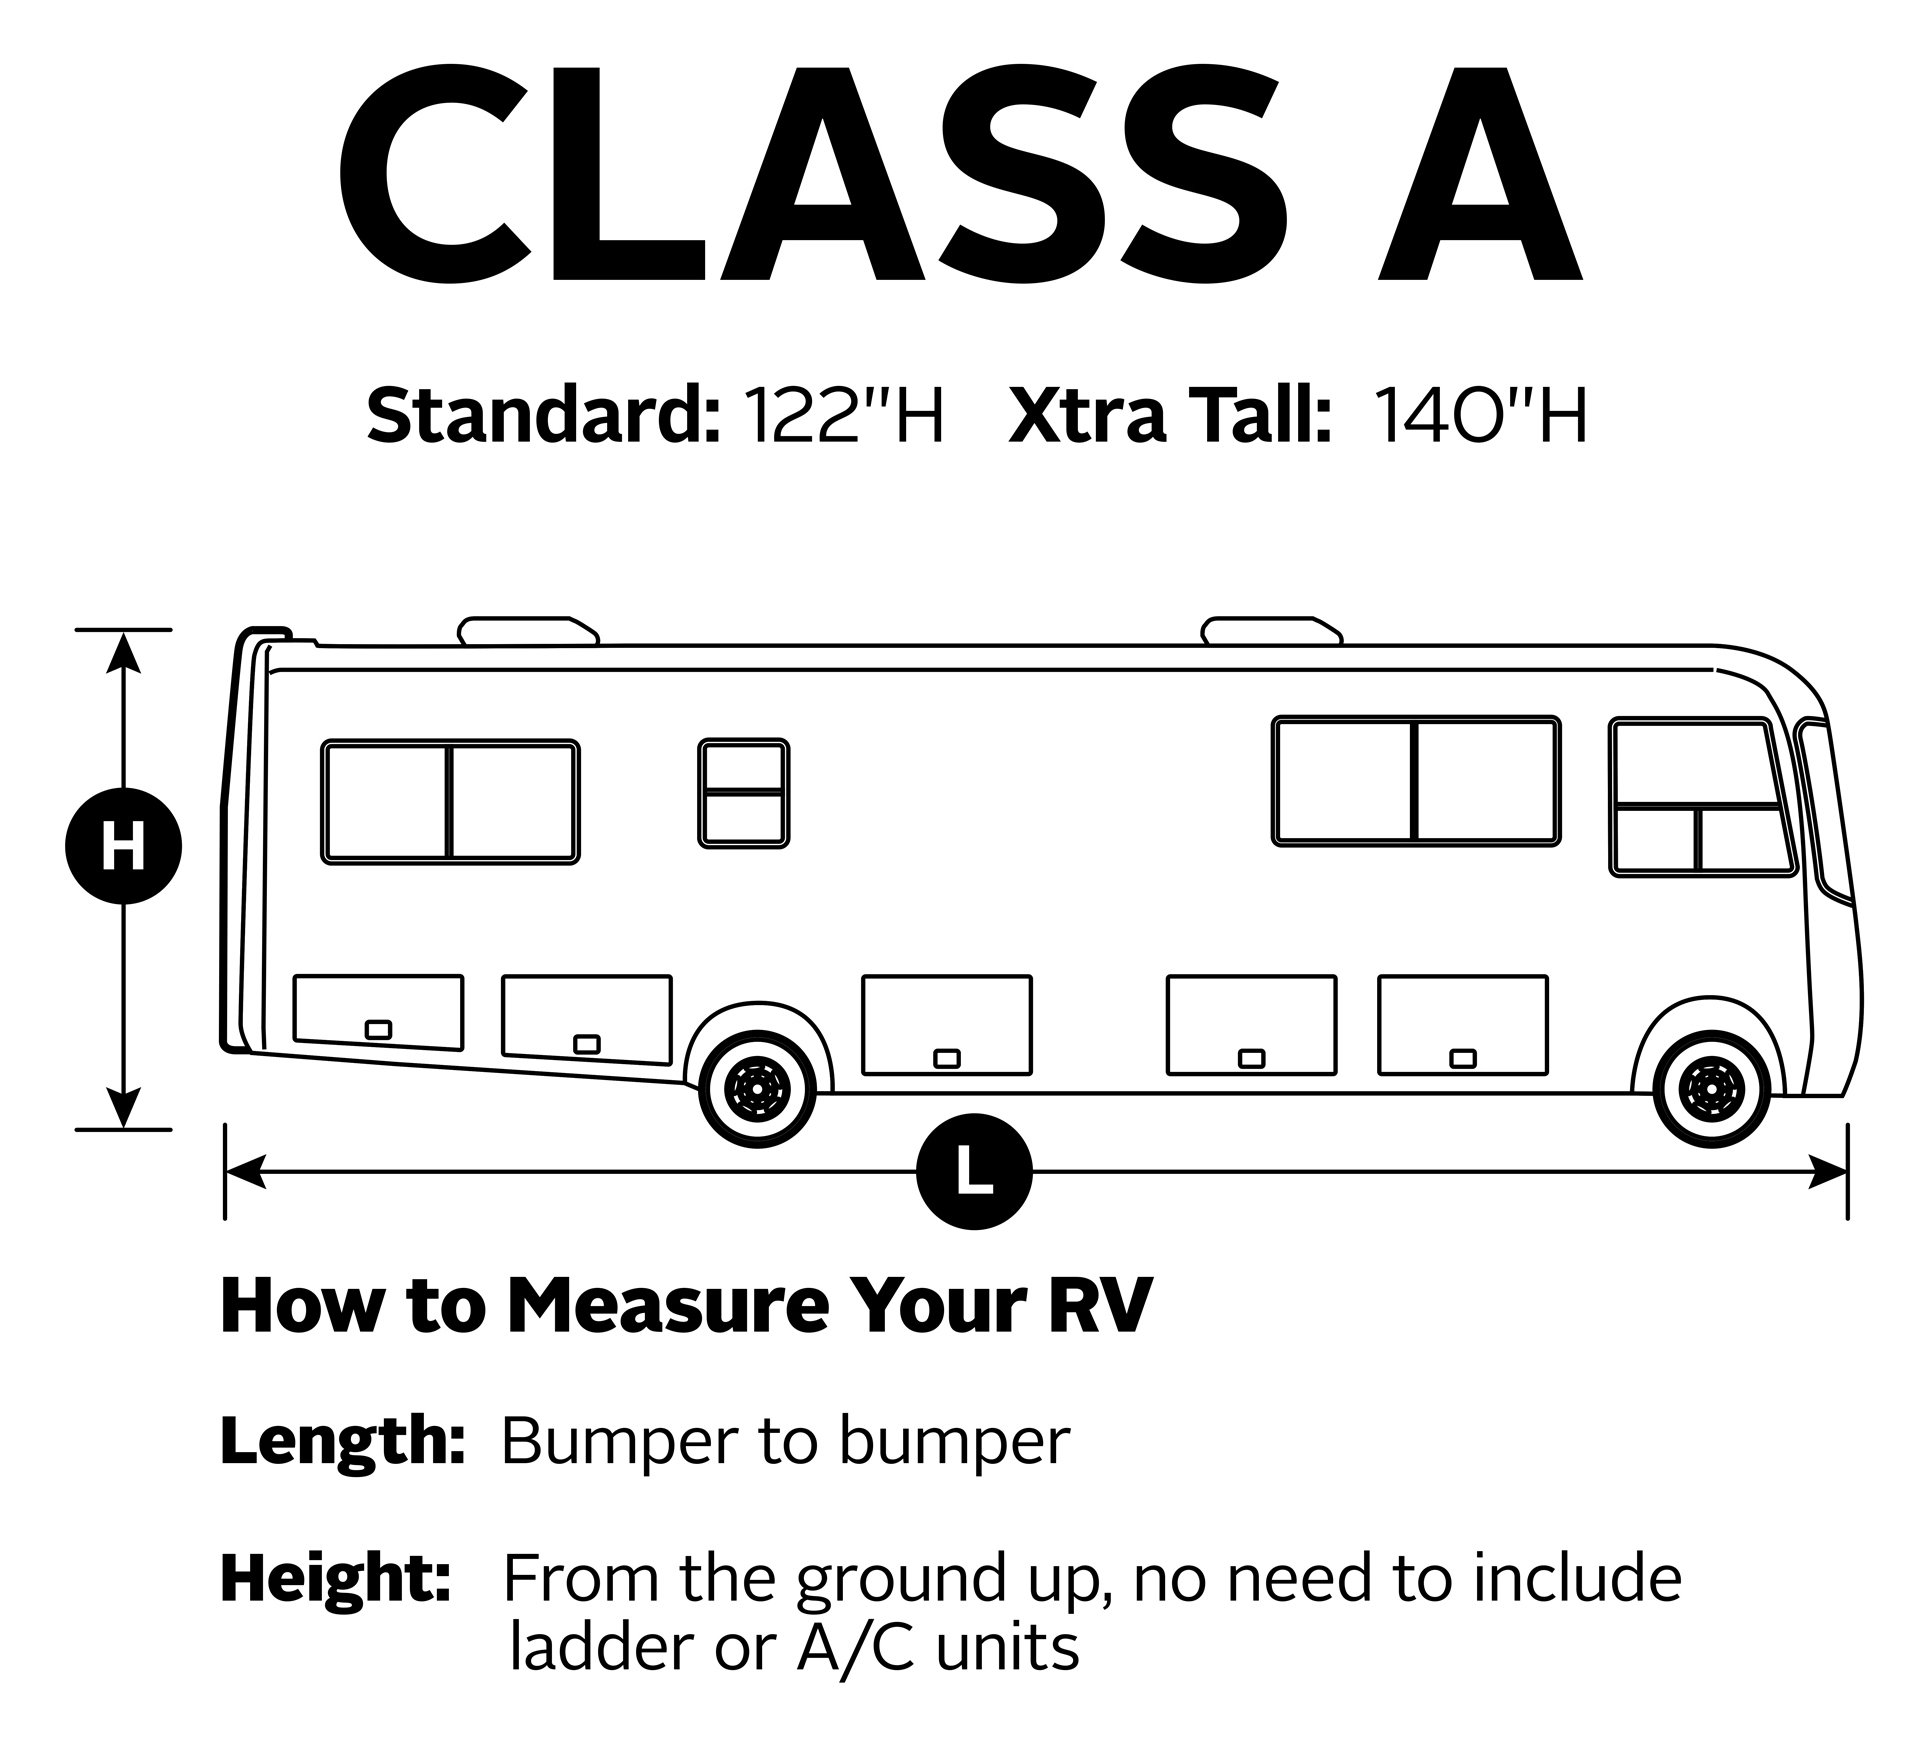 Classic Accessories OverDrive PermaPro Heavy Duty Cover for 24' to 28' Class A RVs by Classic Accessories (Image #3)